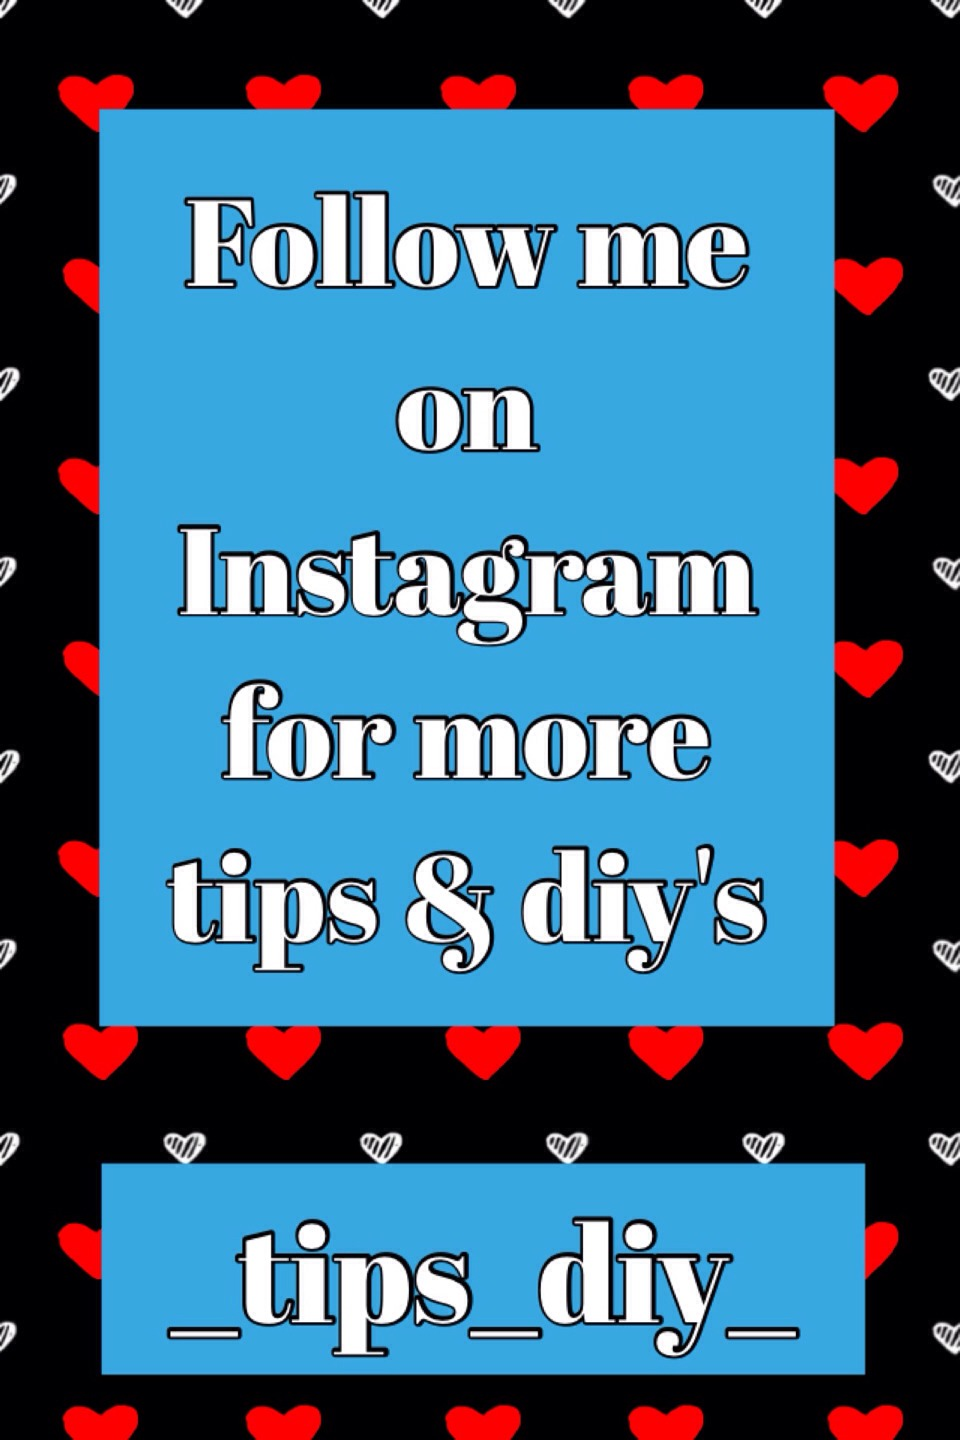 Follow me on Instagram for more tips & diy's